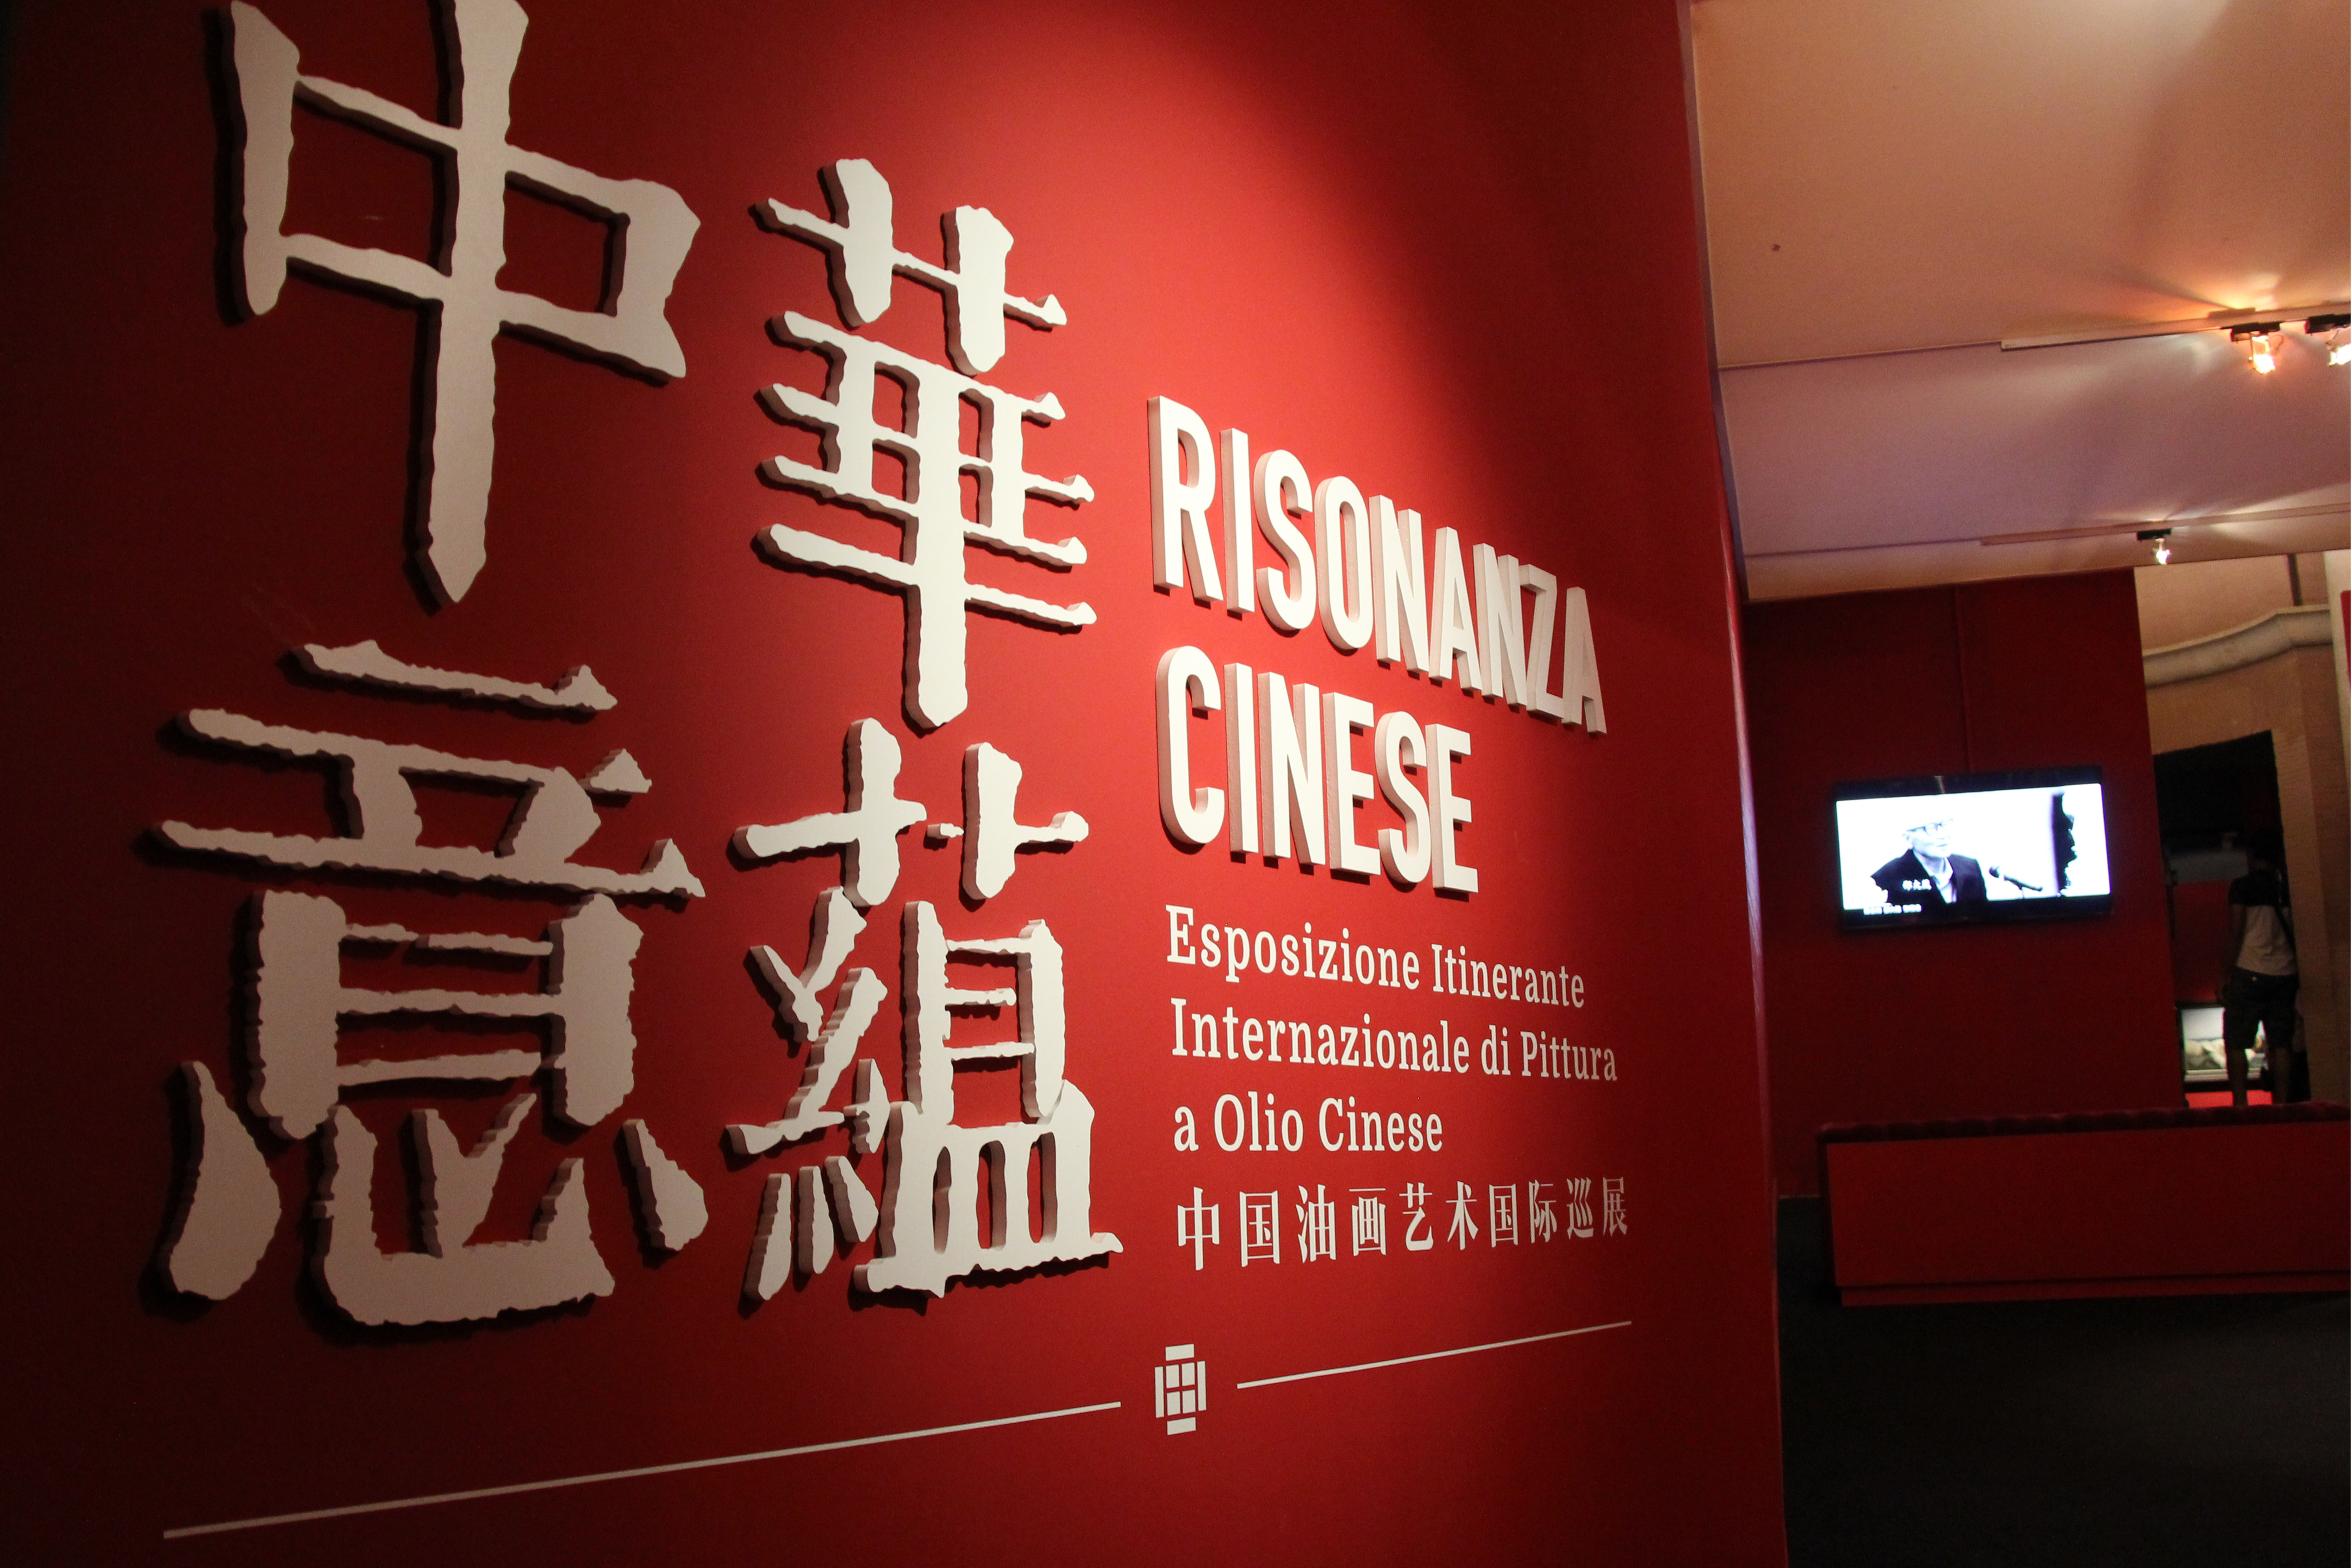 Chinese oil painting exhibit kicks off in Italy